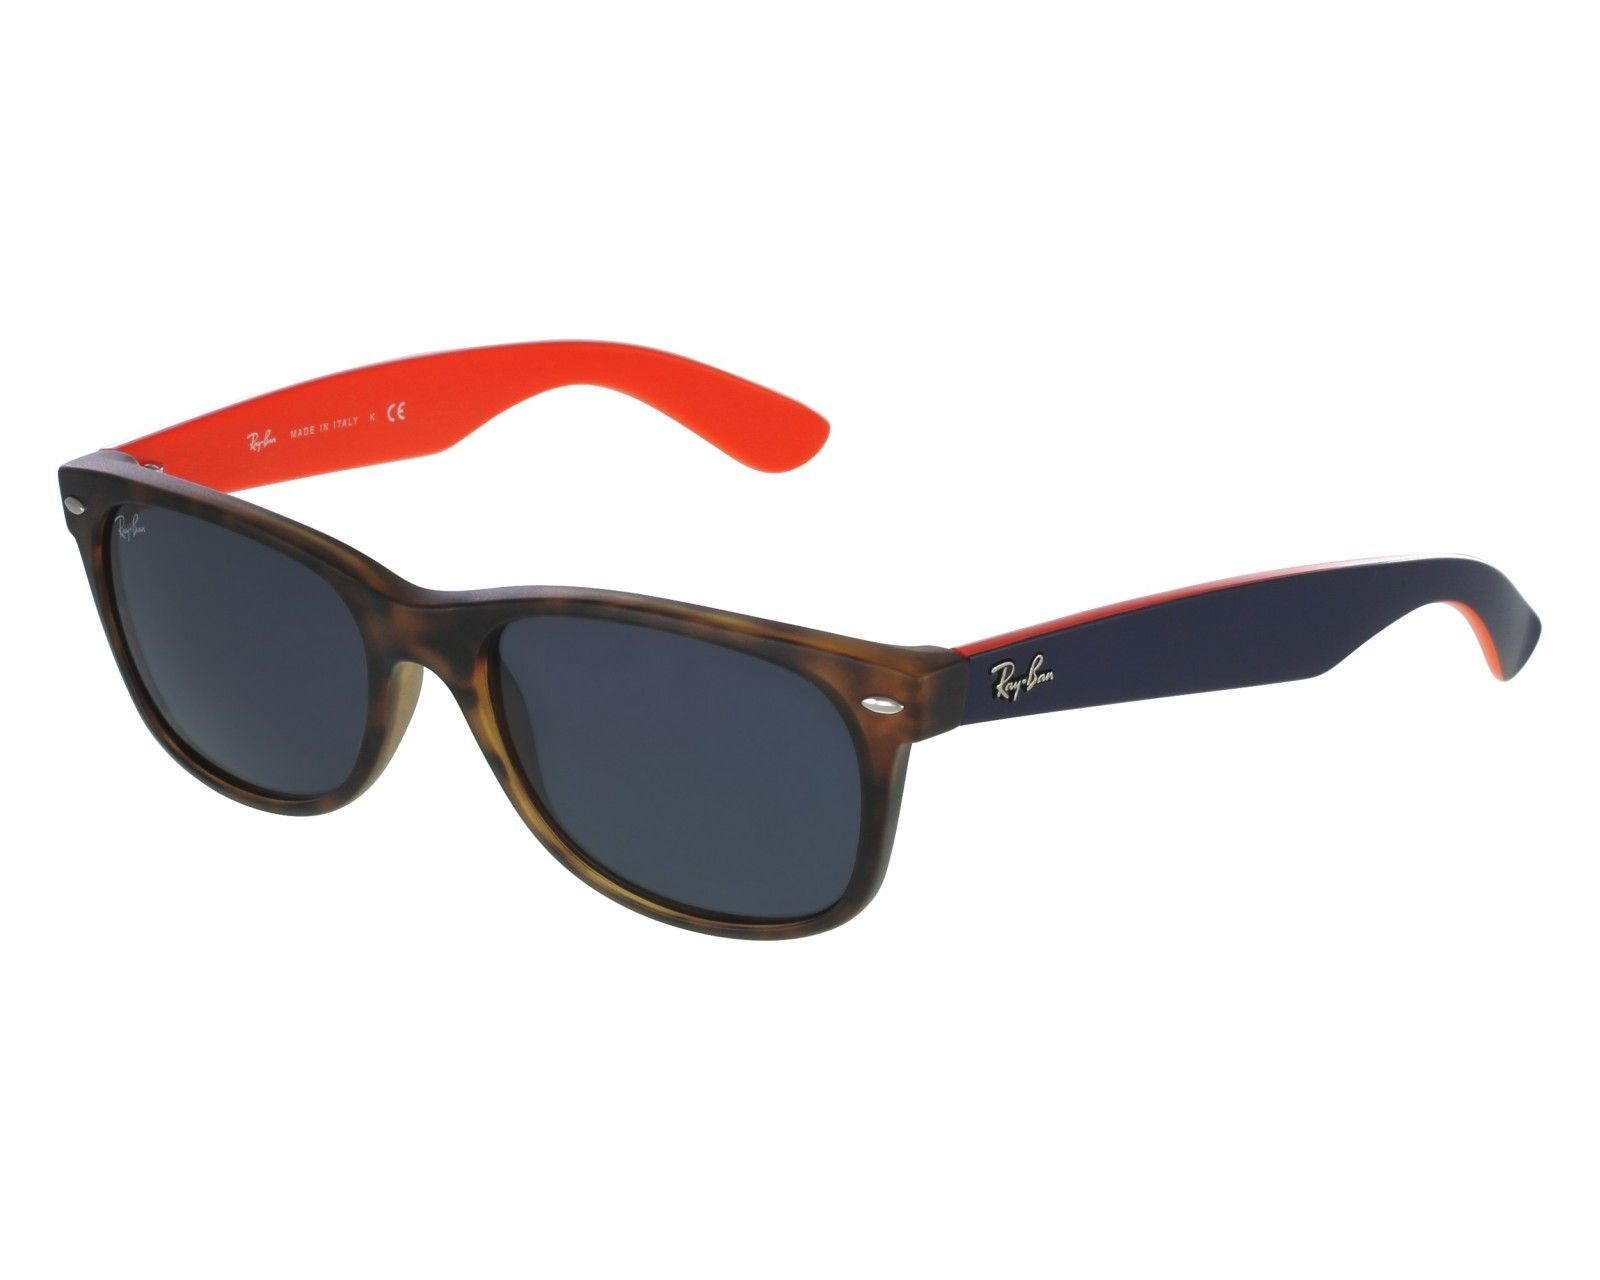 Lunettes Ray-Ban RB2132 6180/R5 - Cat.3 MJ6FxapL4